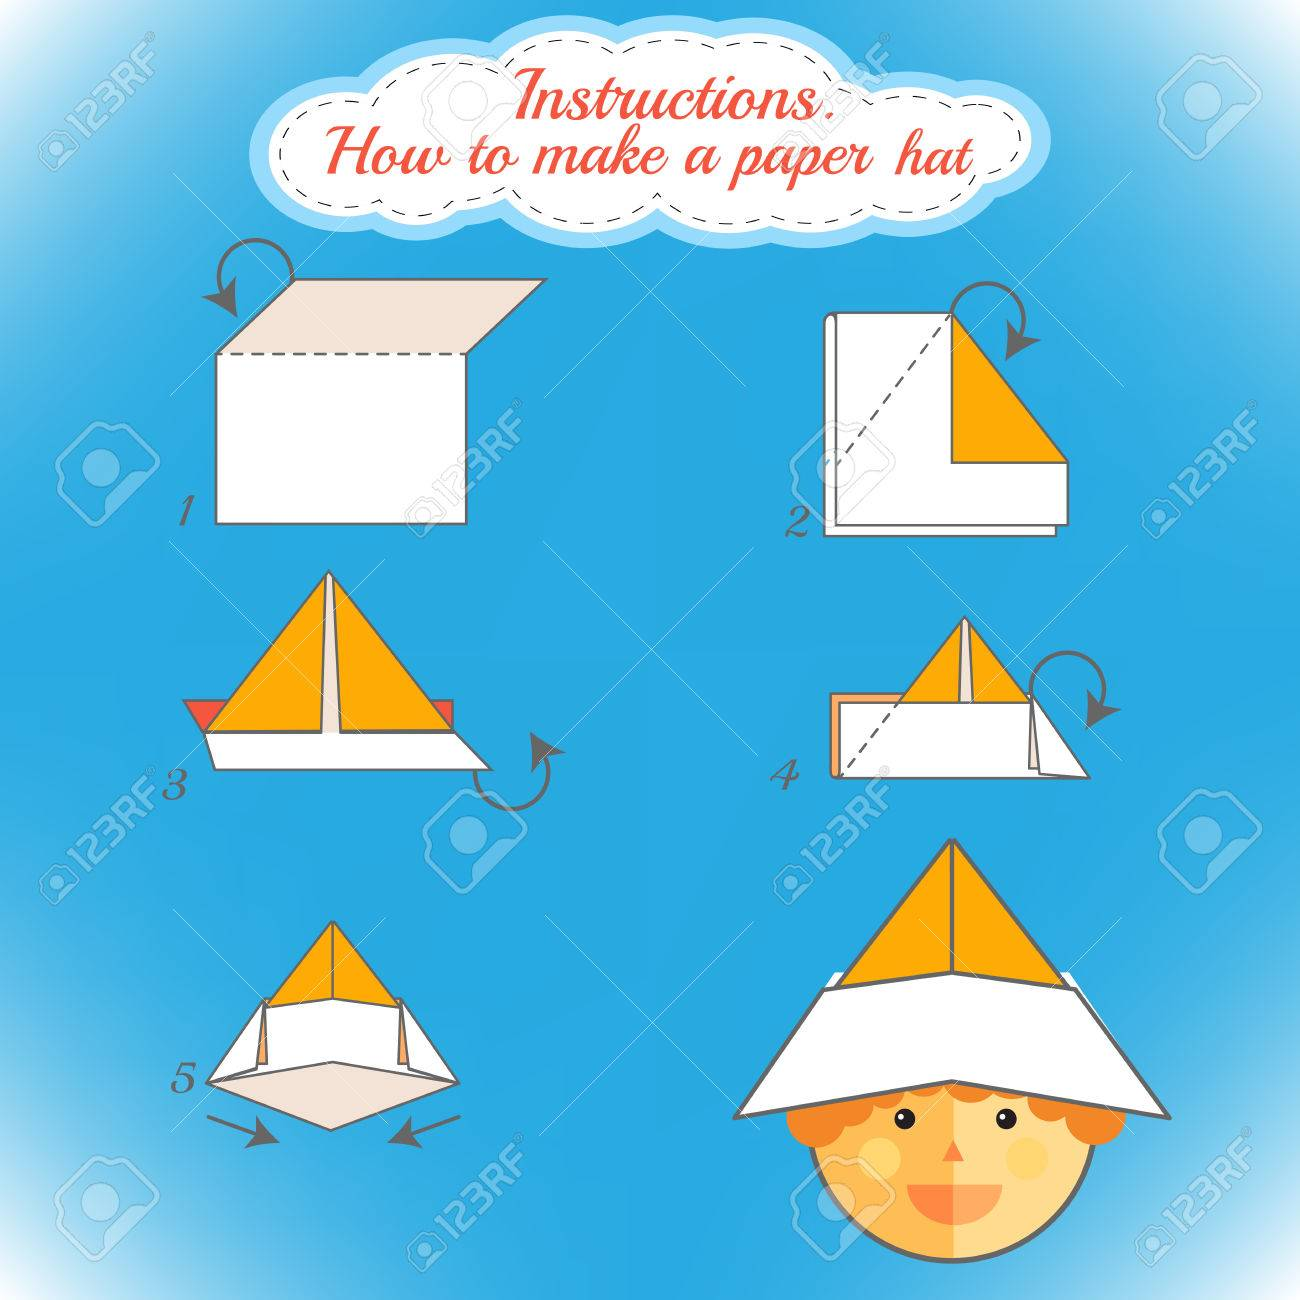 Instructions How To Make Paper Hat Tutorial Hat Made Of Paper Royalty Free Cliparts Vectors And Stock Illustration Image 54971233